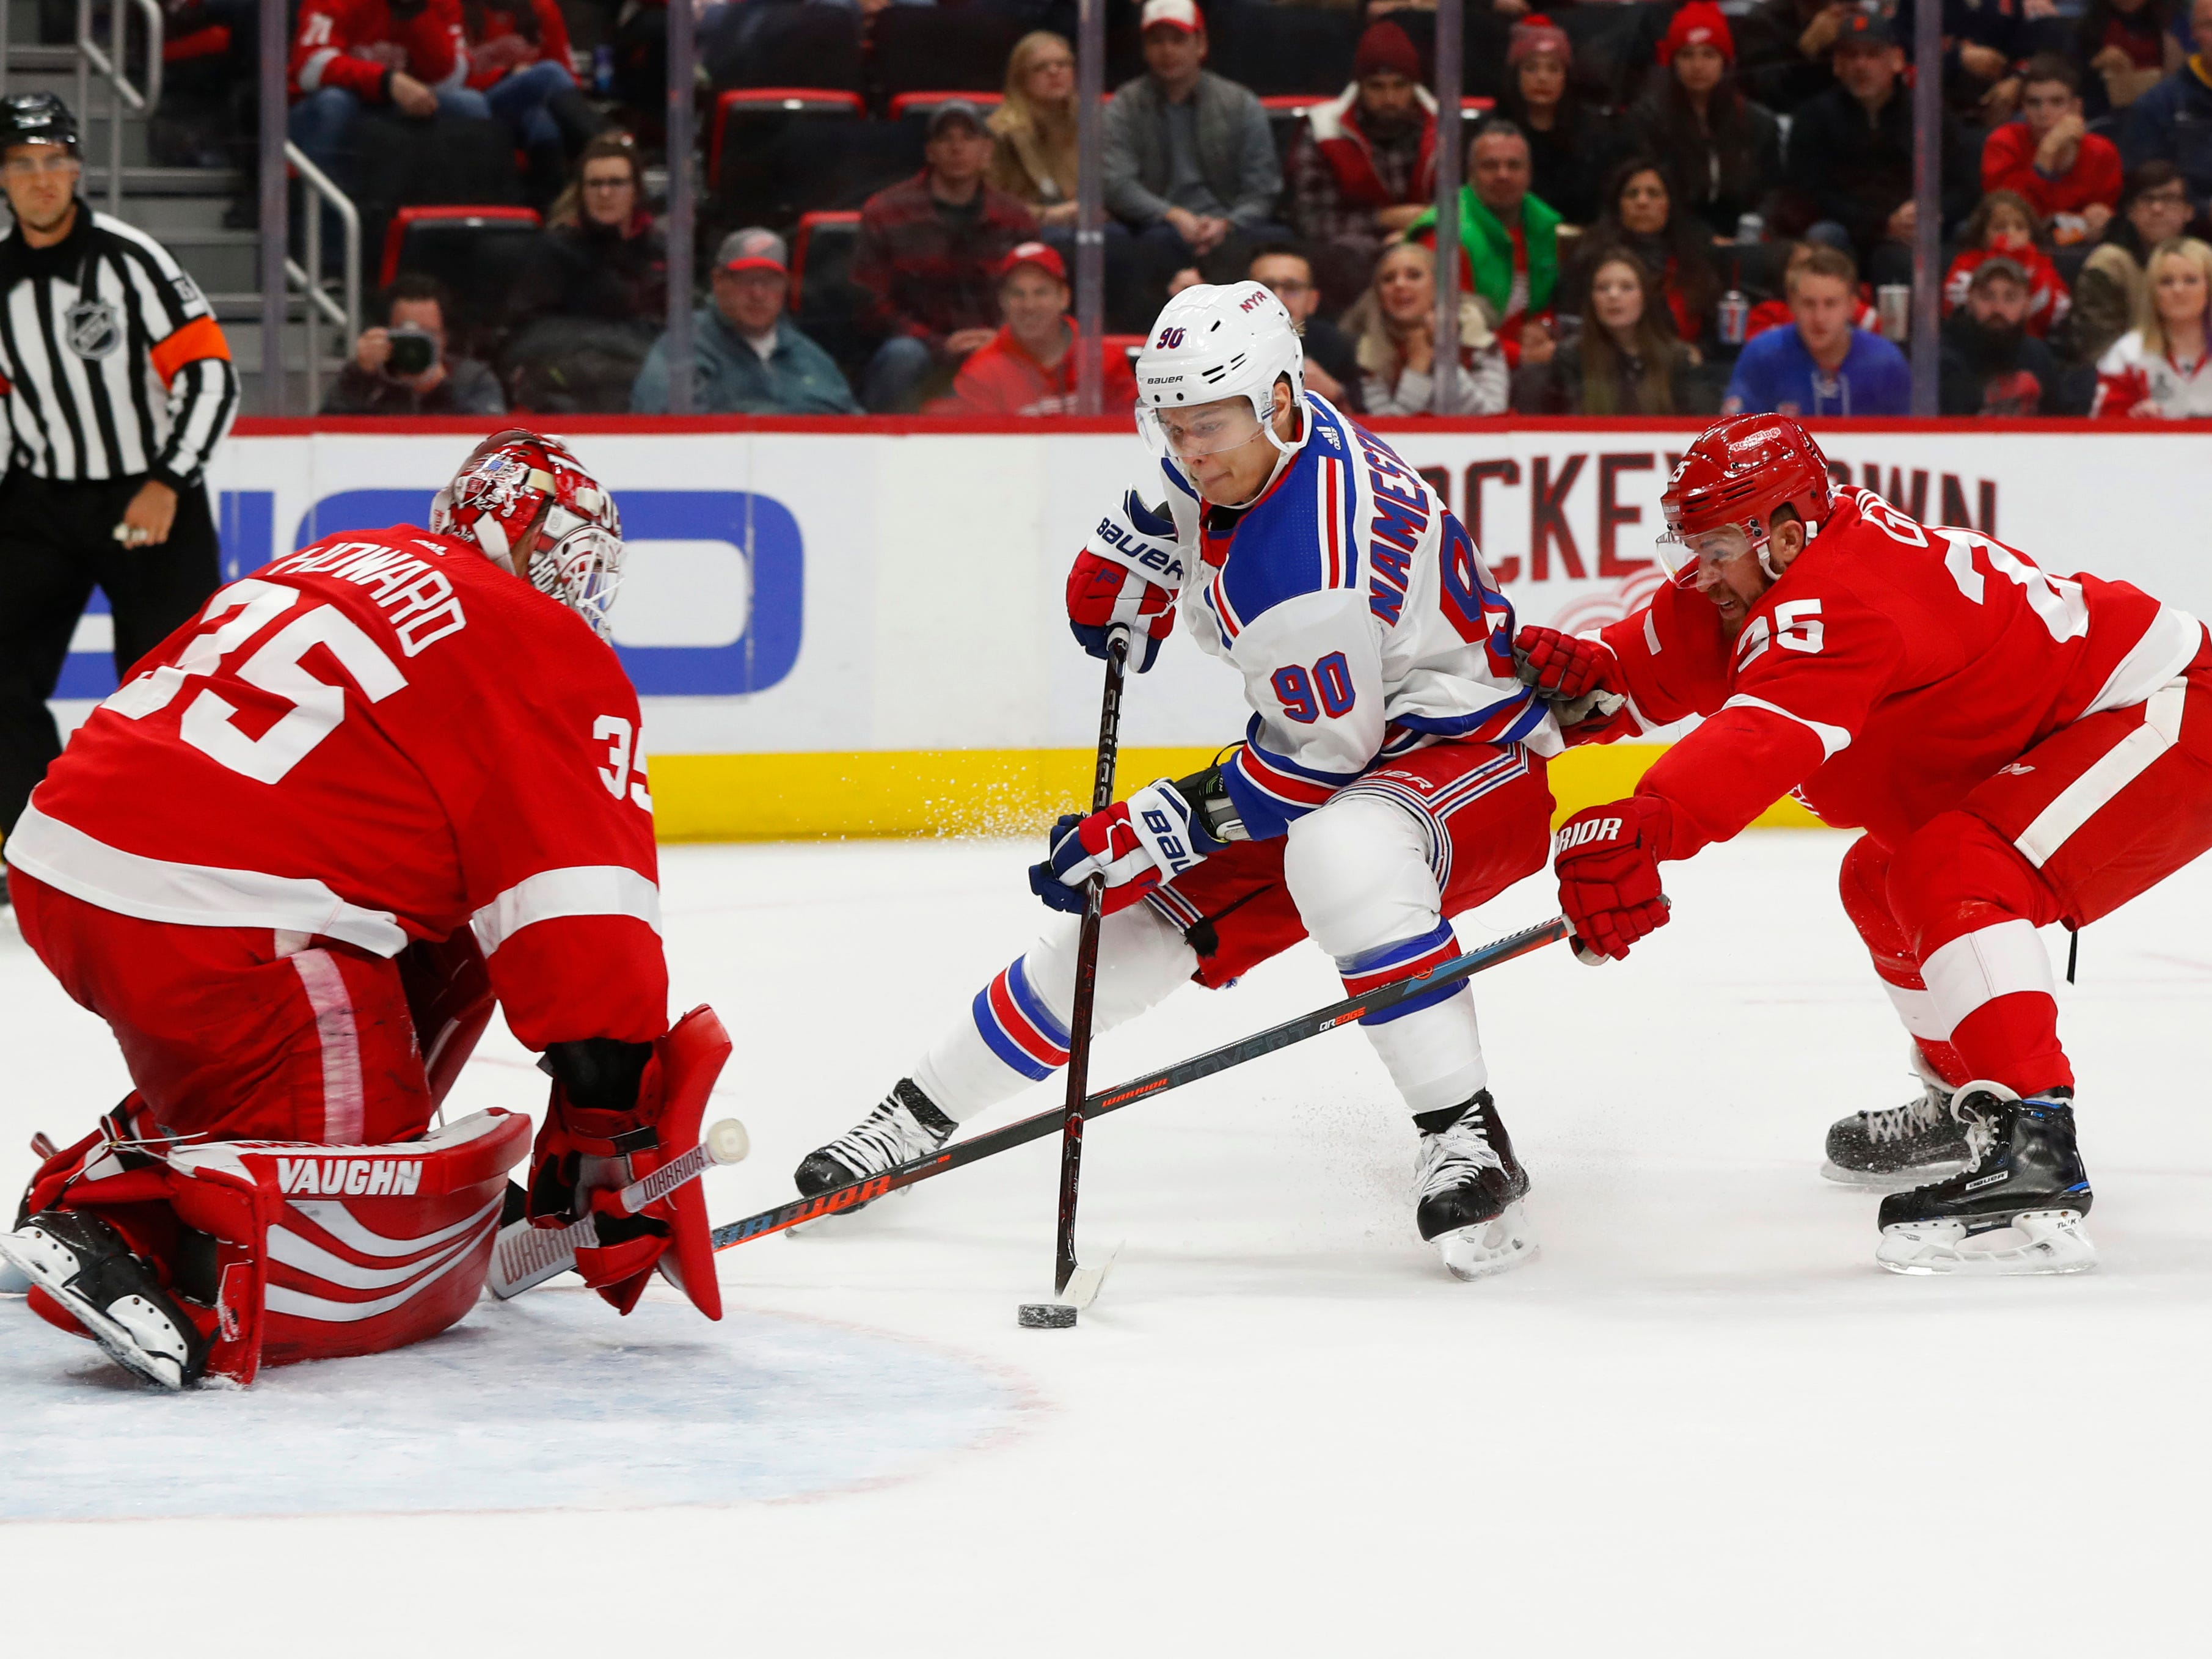 Detroit Red Wings goalie Jimmy Howard (35) stops a shot by New York Rangers' Vladislav Manestnikov (90) as Mike Green defends in the first period of an NHL hockey game in Detroit, Friday, Nov. 9, 2018.